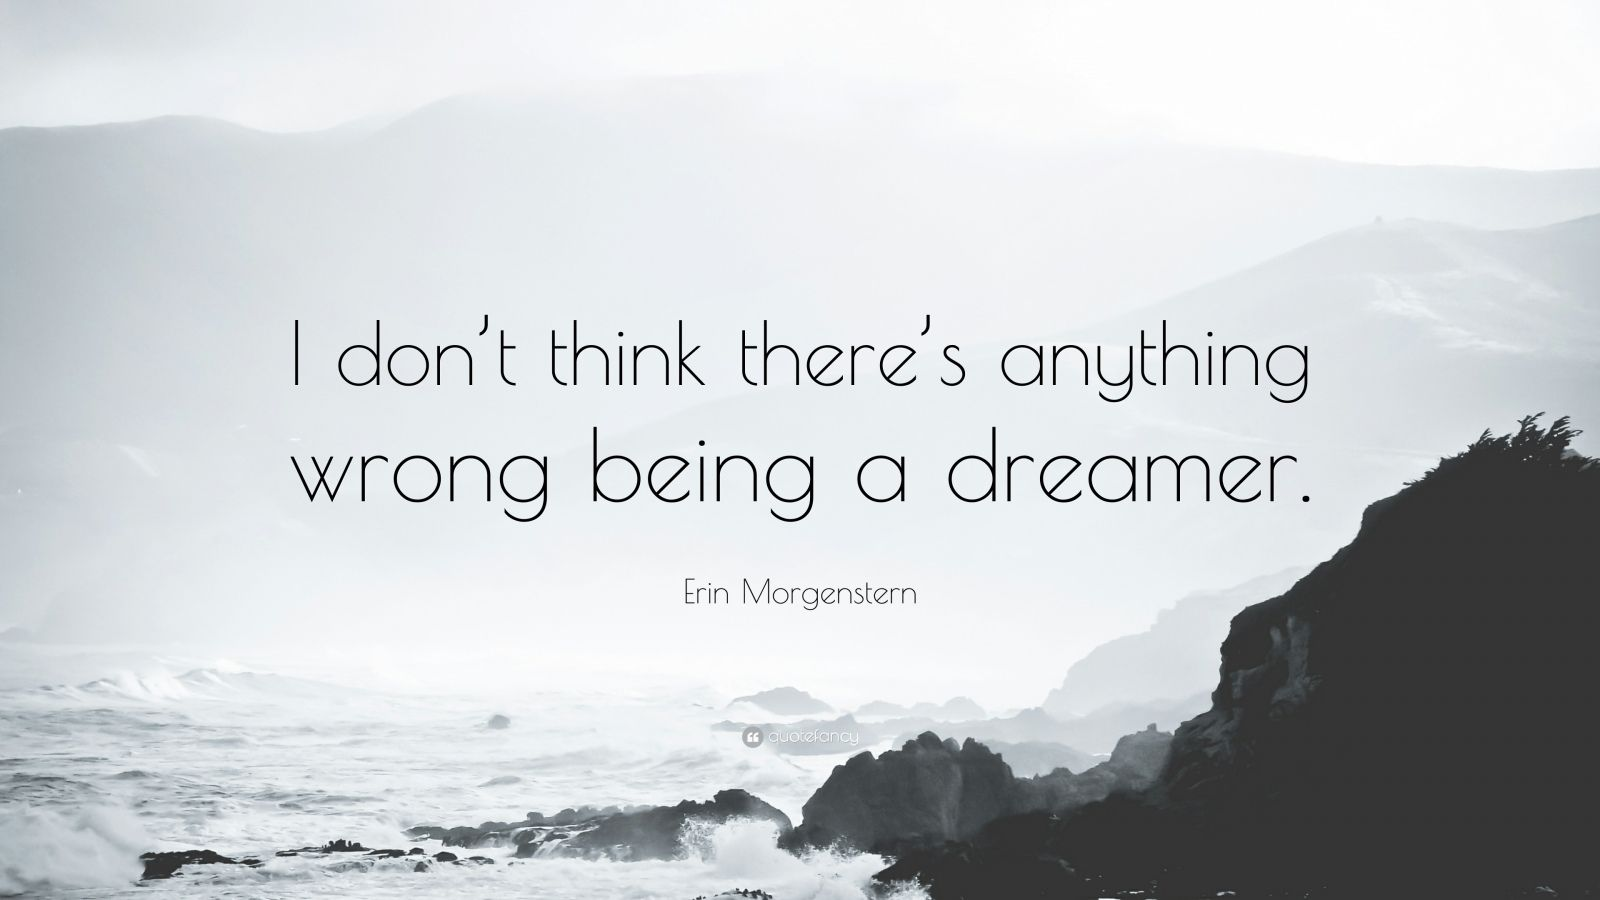 """Erin Morgenstern Quote: """"I don't think there's anything wrong being a dreamer."""""""